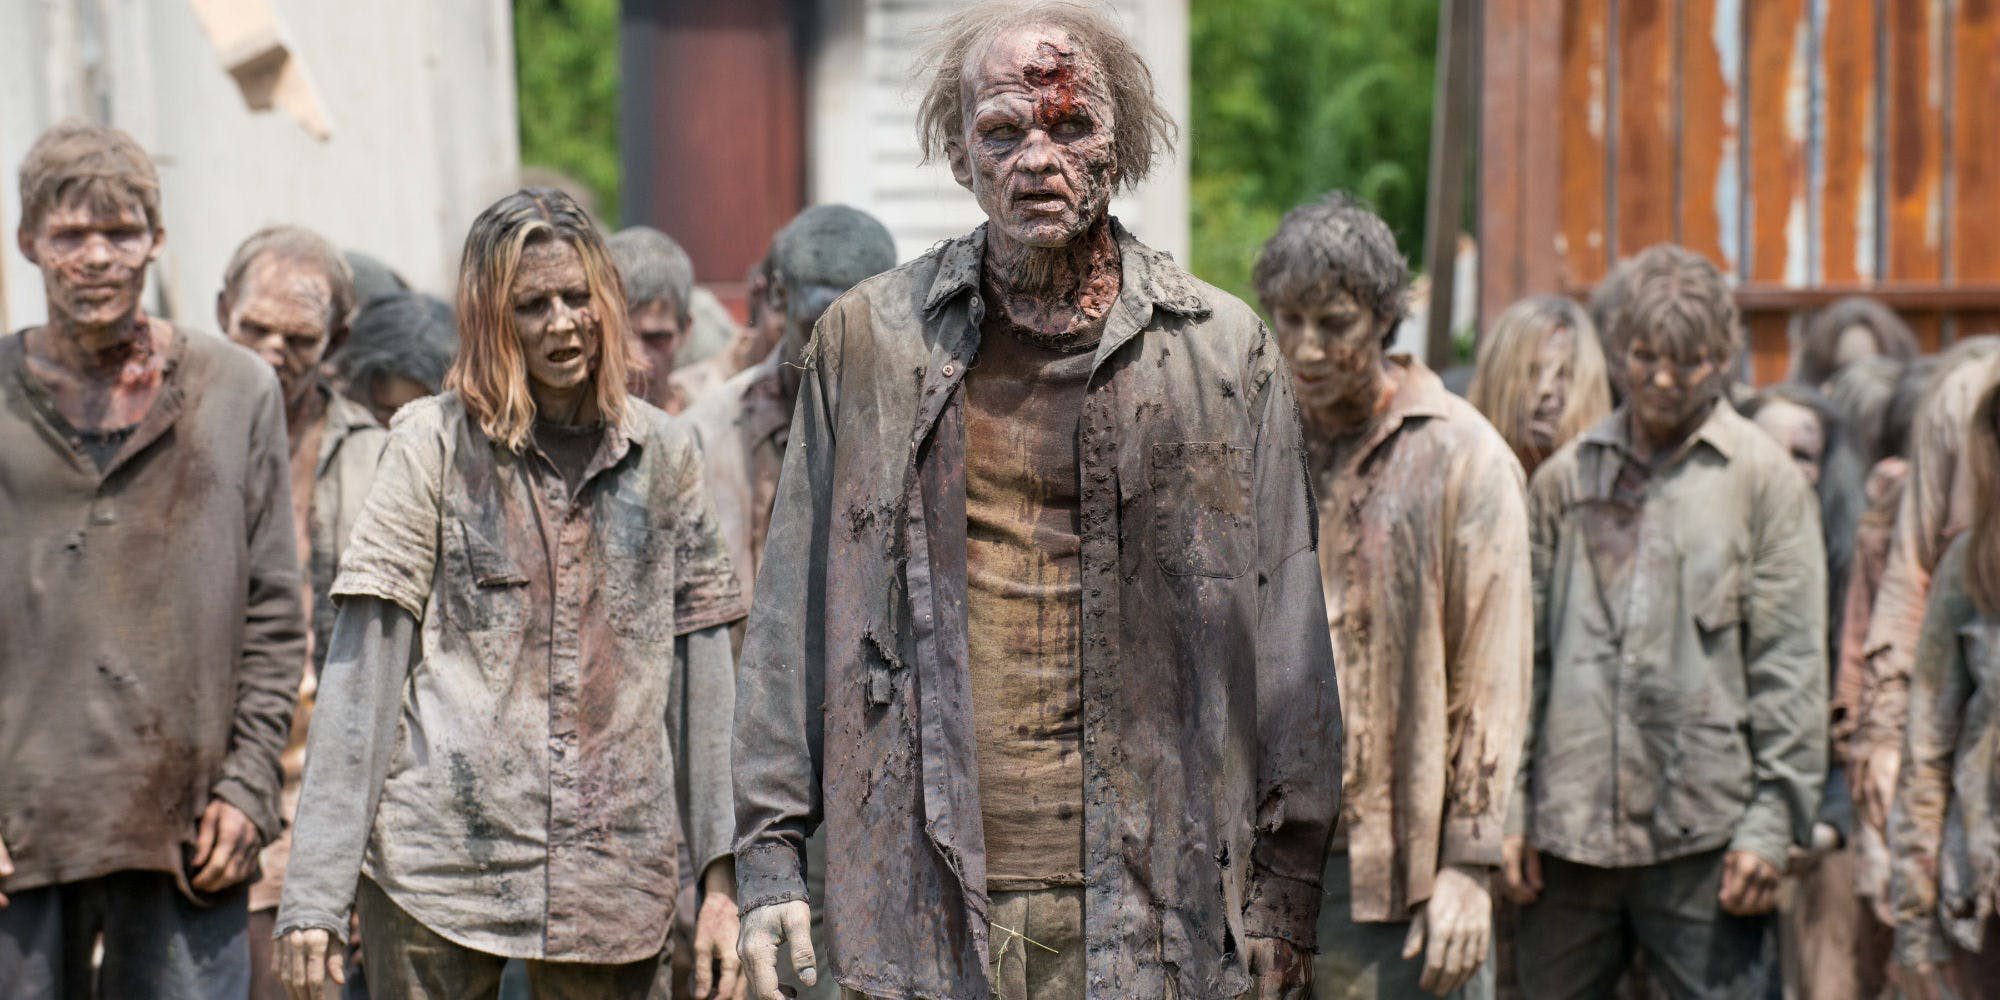 What the Hell is going on with the Walking Dead?